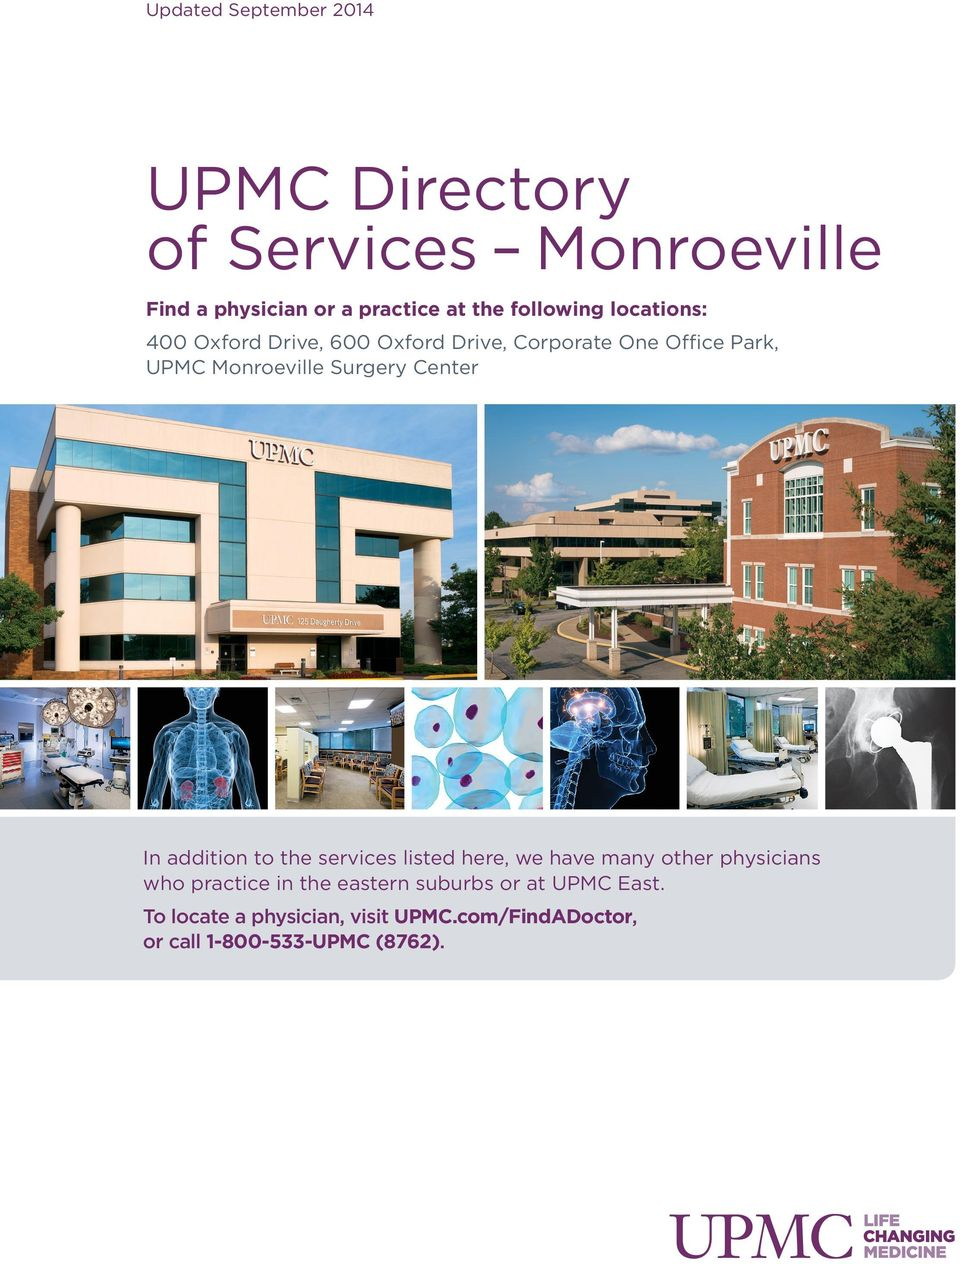 UPMC Directory of Services Monroeville - PDF